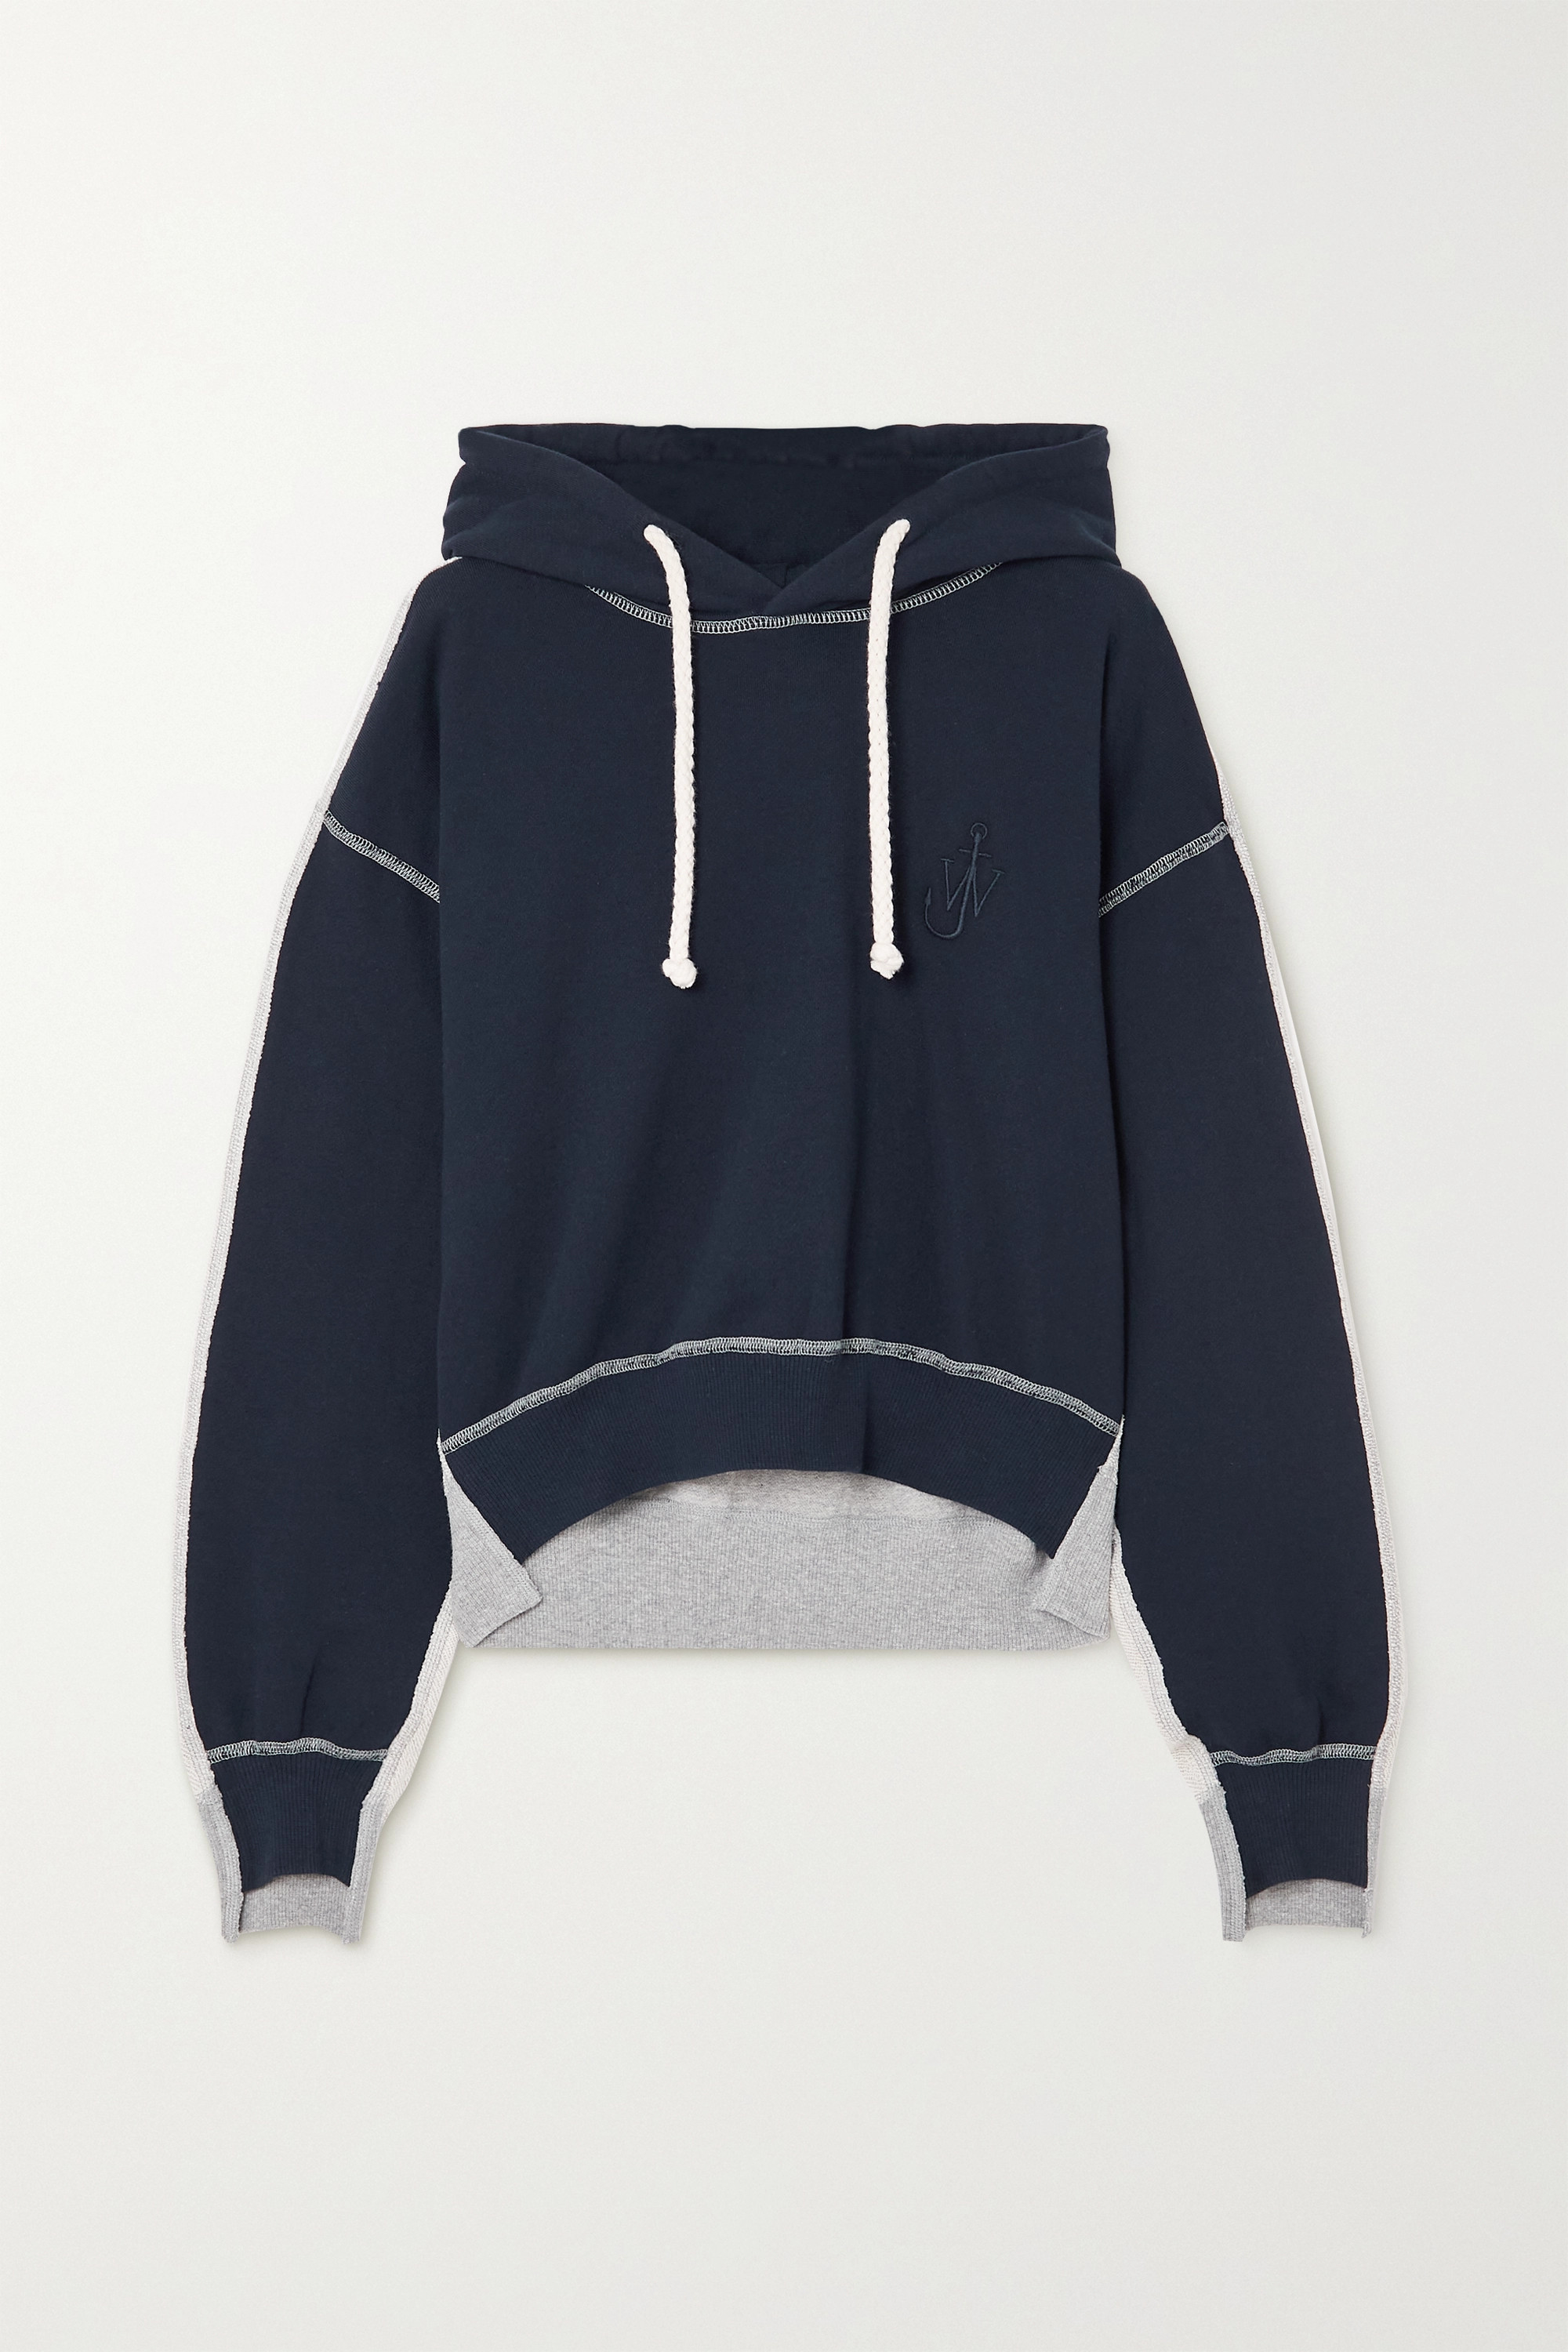 JW Anderson Paneled cotton-terry and jersey hoodie